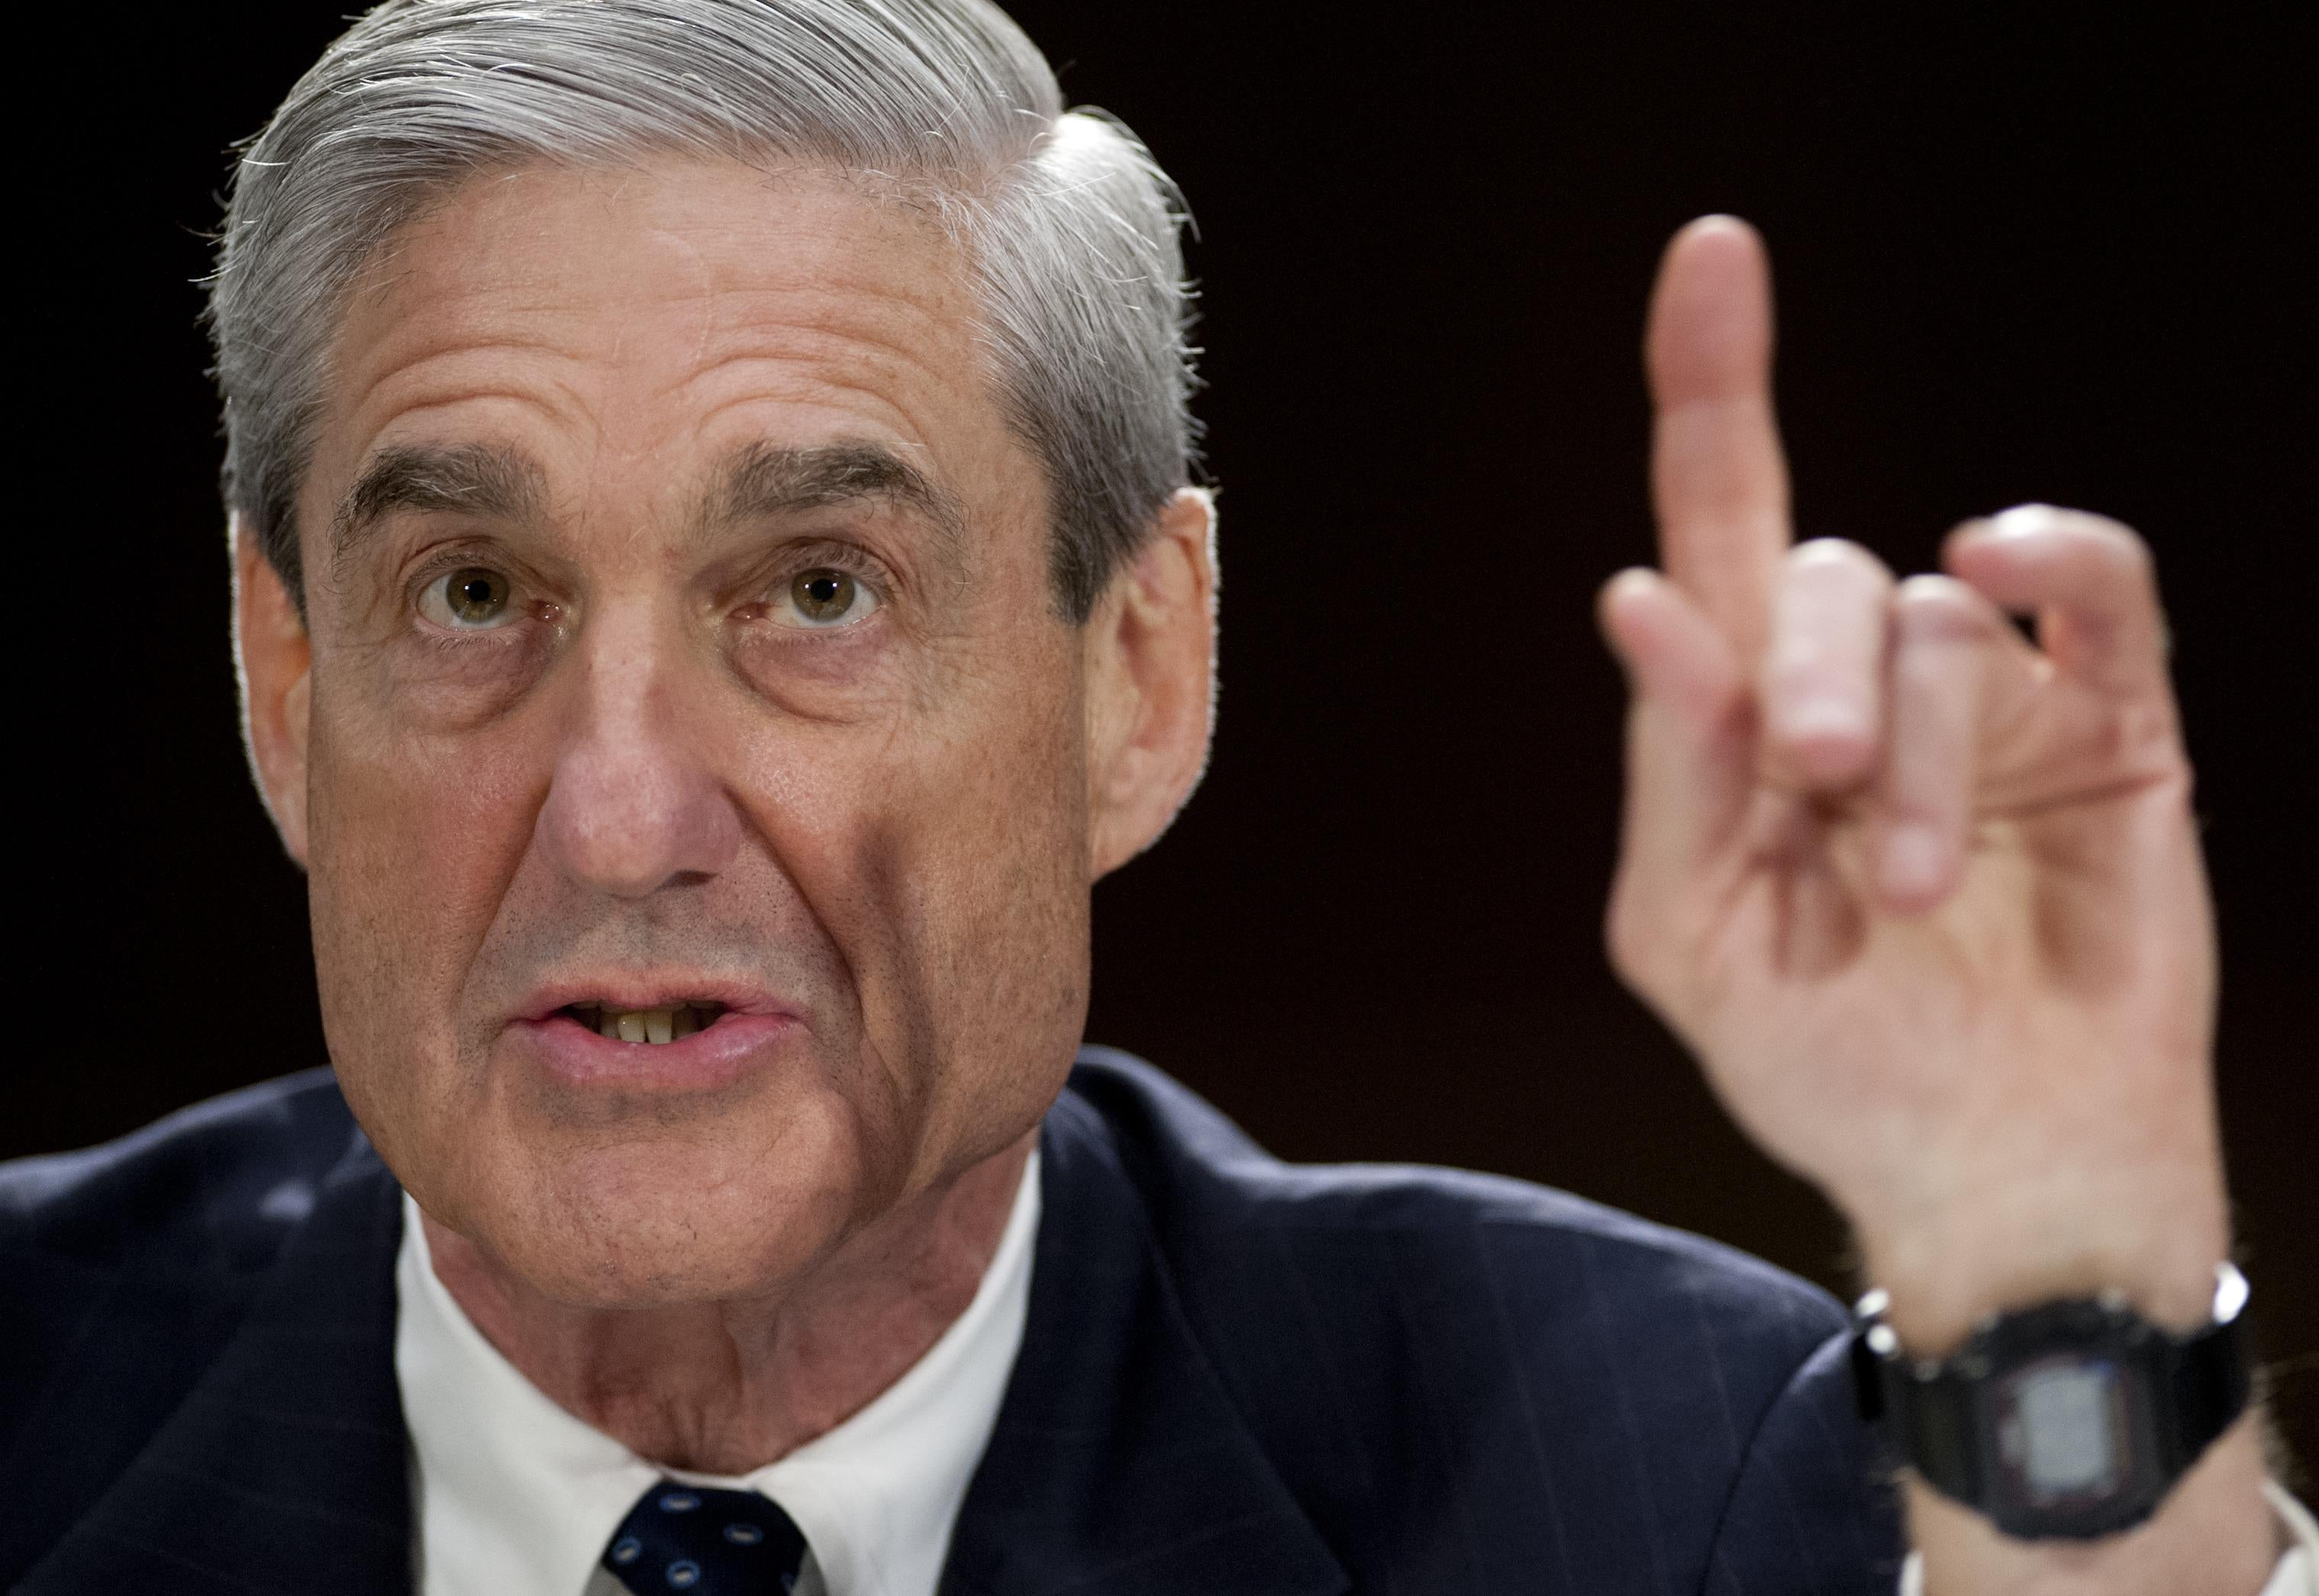 Special Counsel Robert Mueller speaking while making a pointed hand gesture.